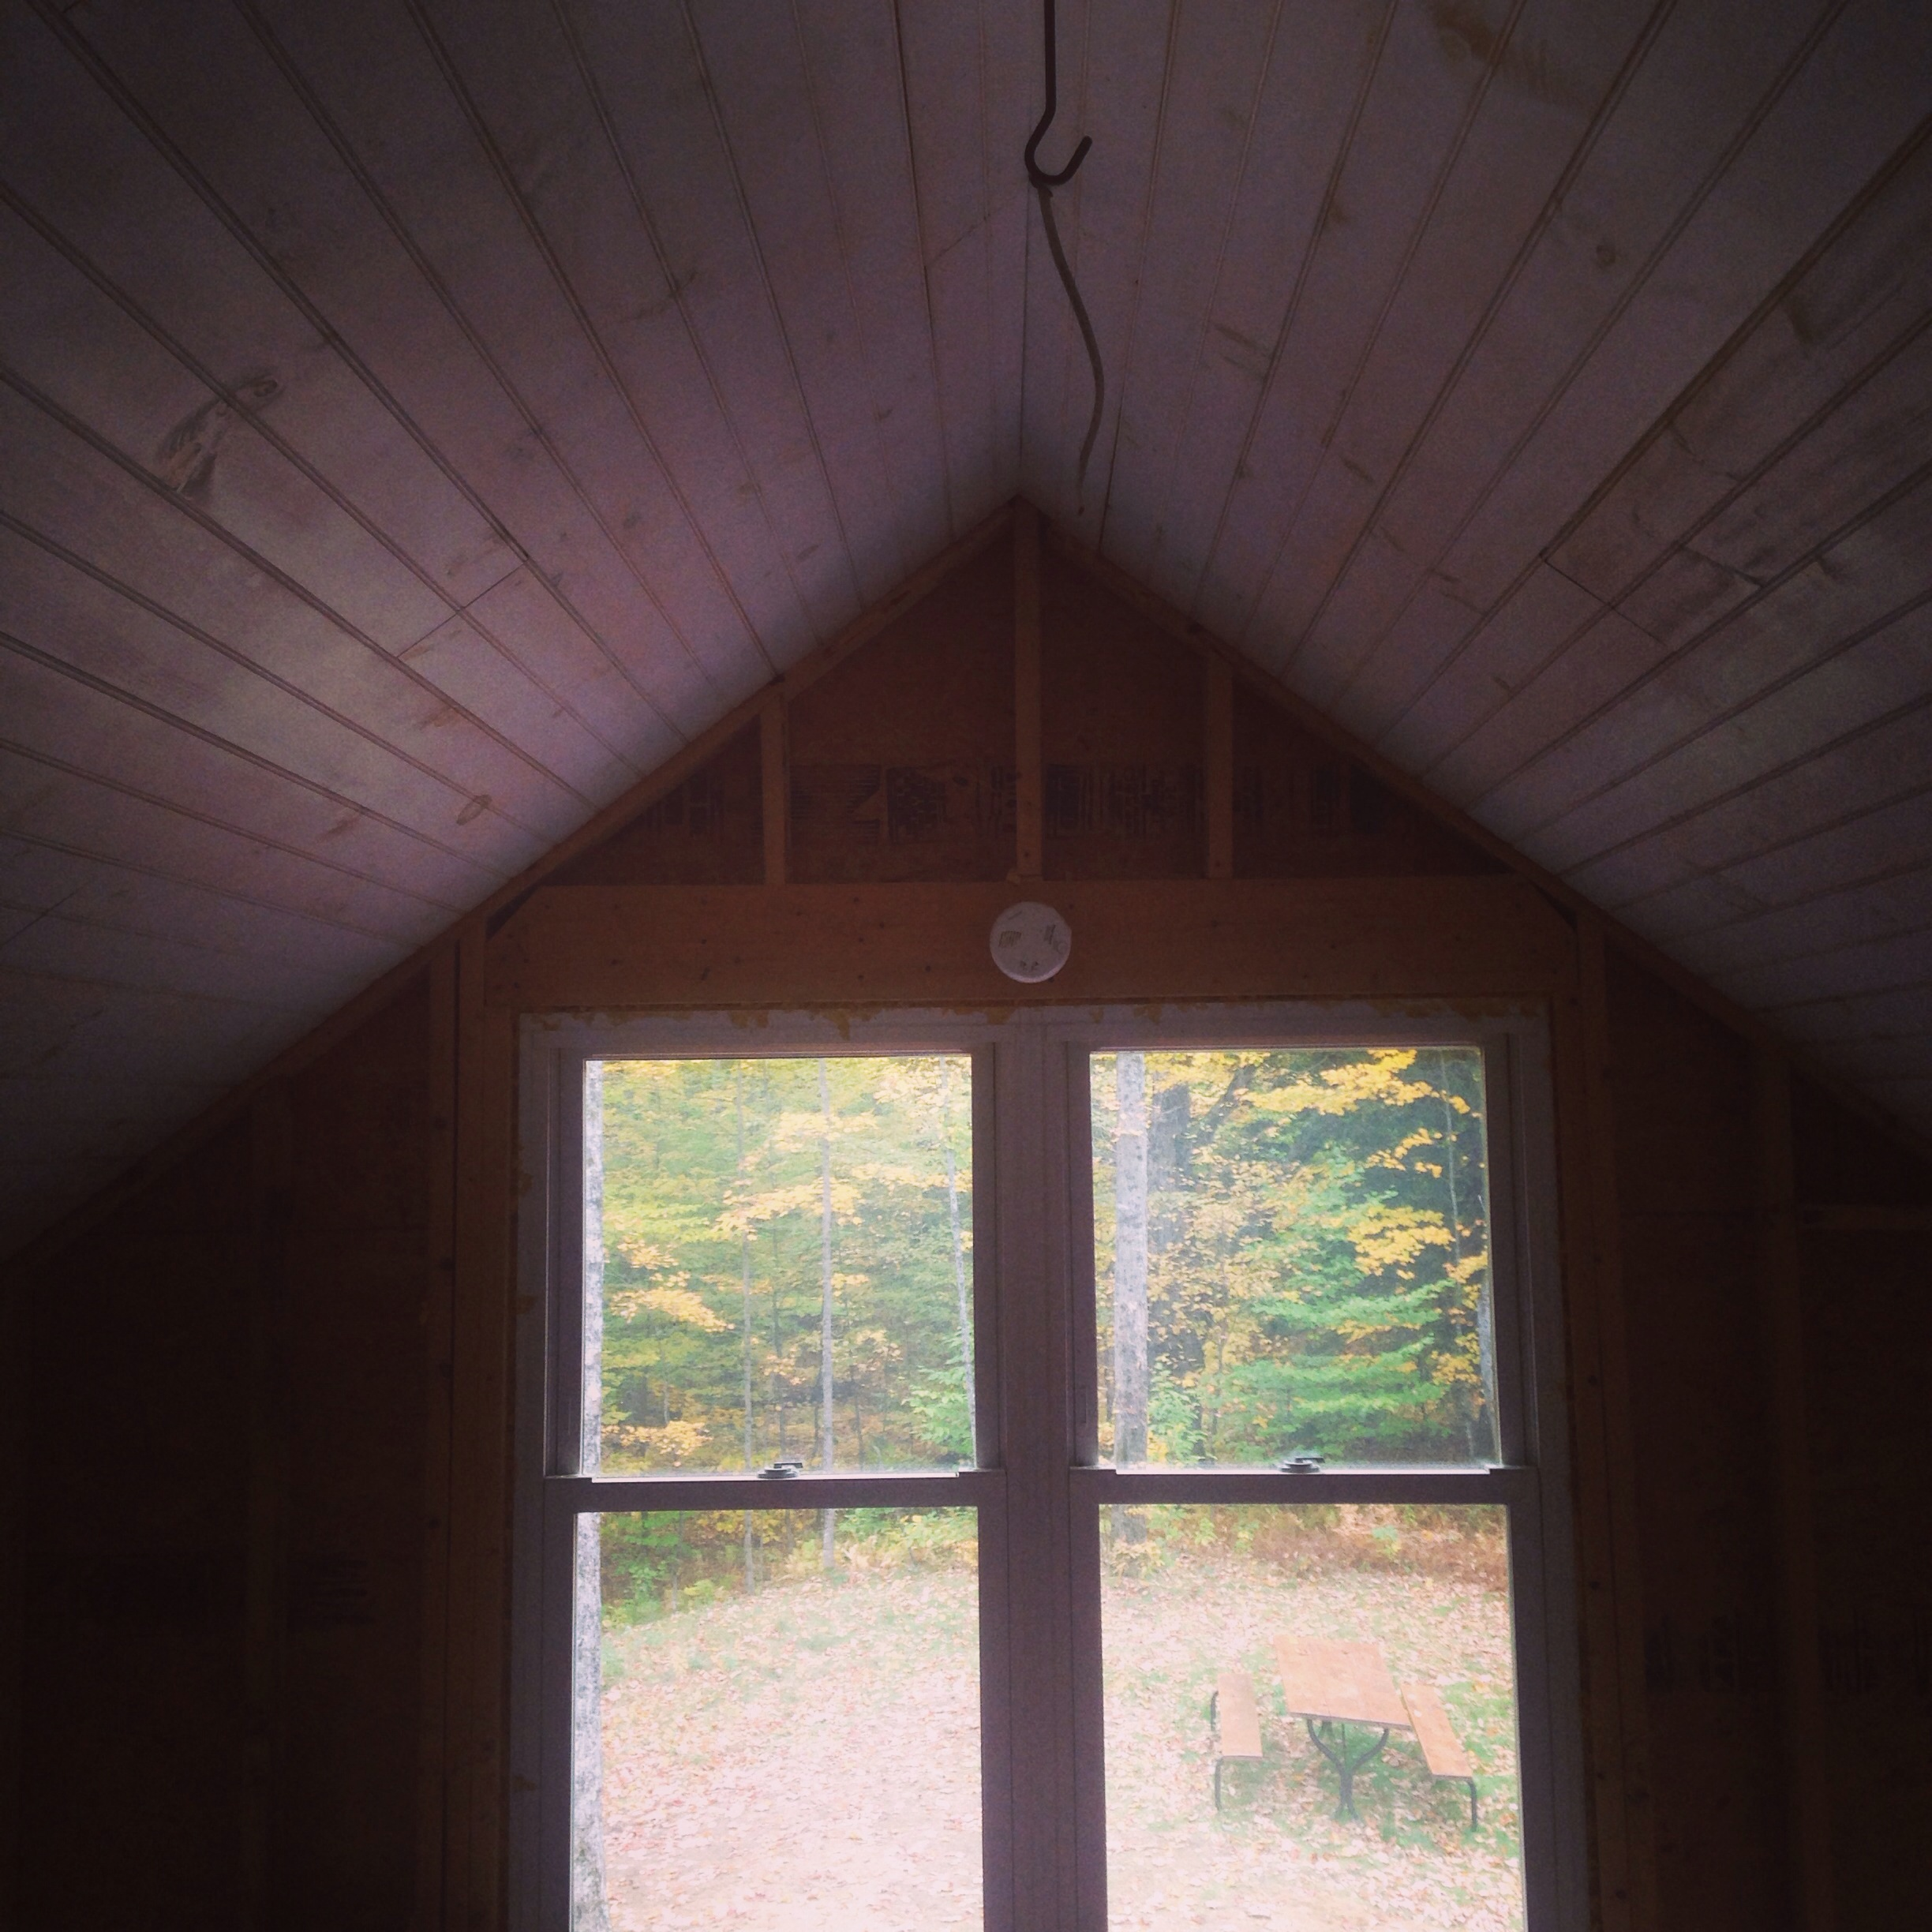 The view from loft space in our little 300 sq foot wood cabin - lanterns and blankets kept us warm nights